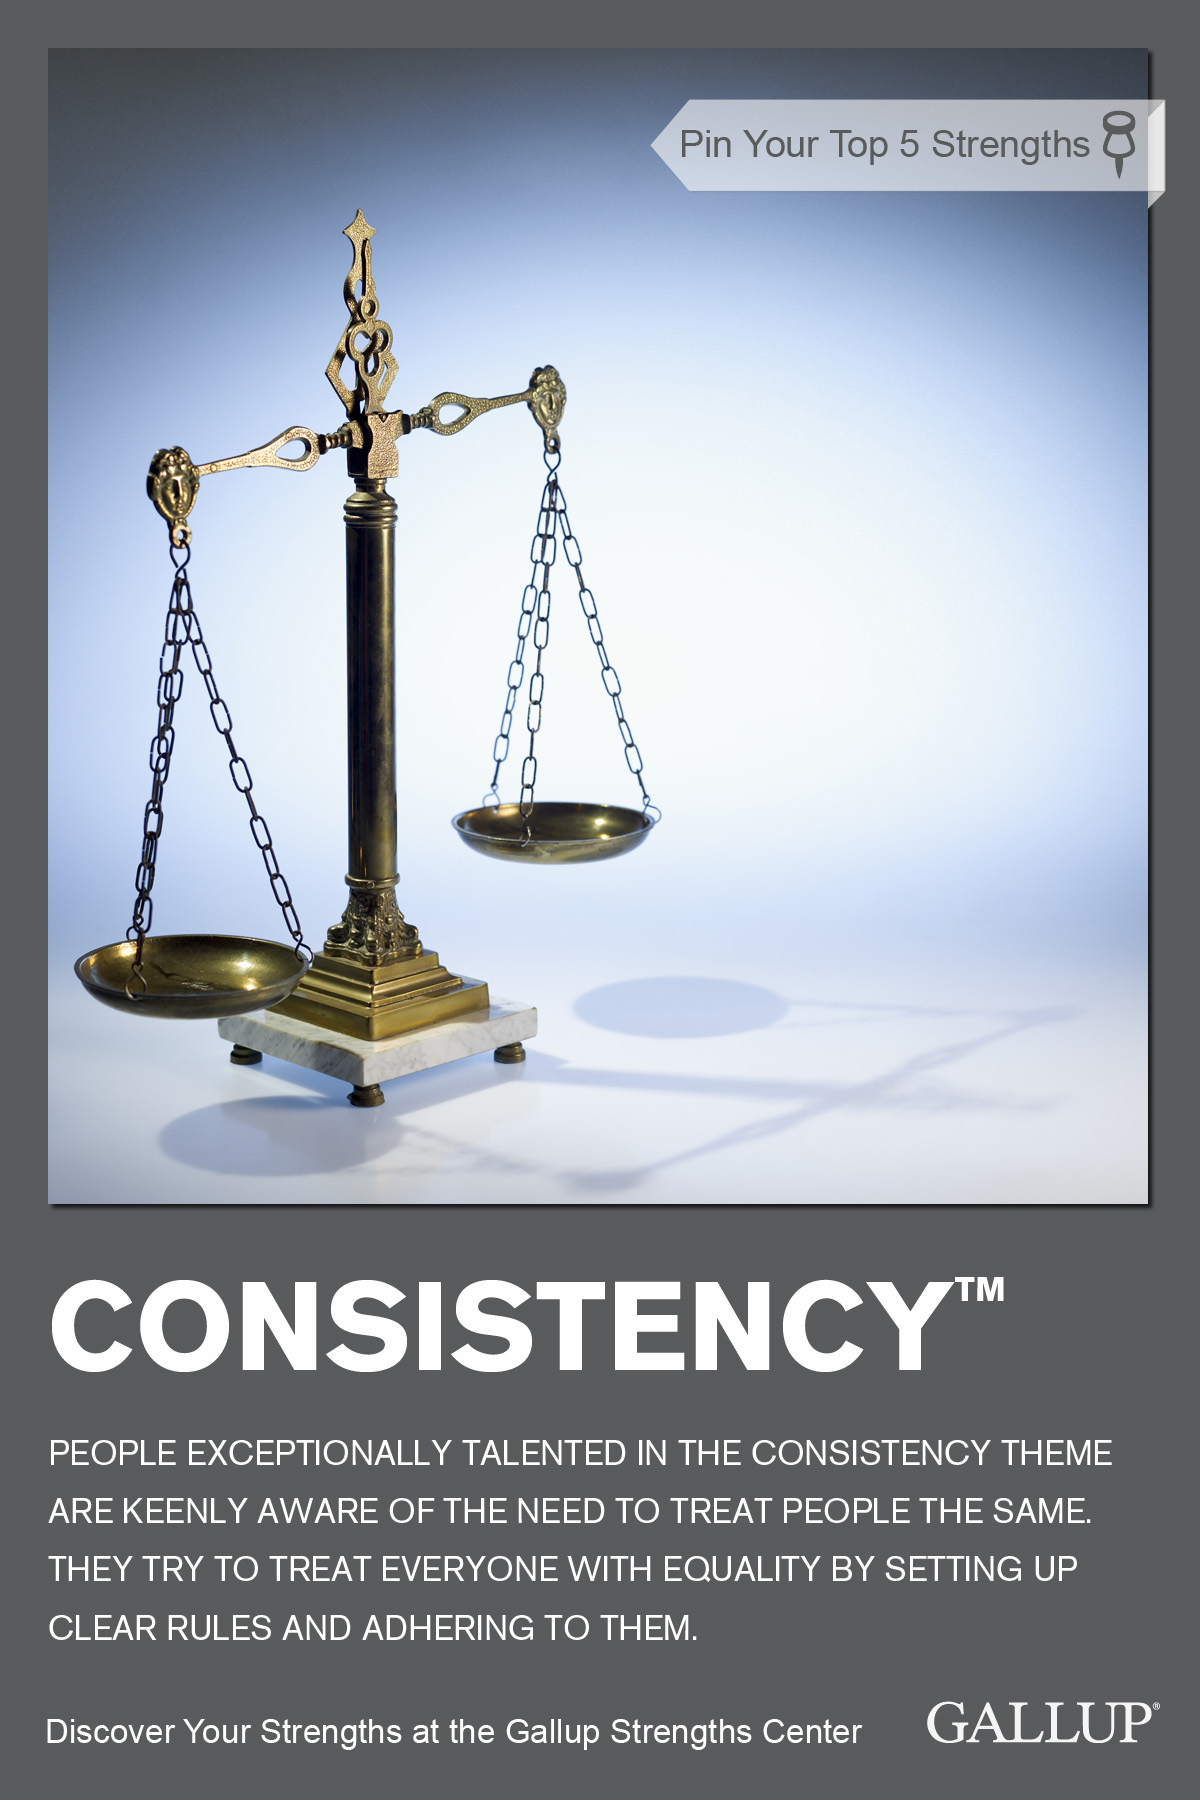 Consistency Strengths School StrengthsFinder Singapore.jpg